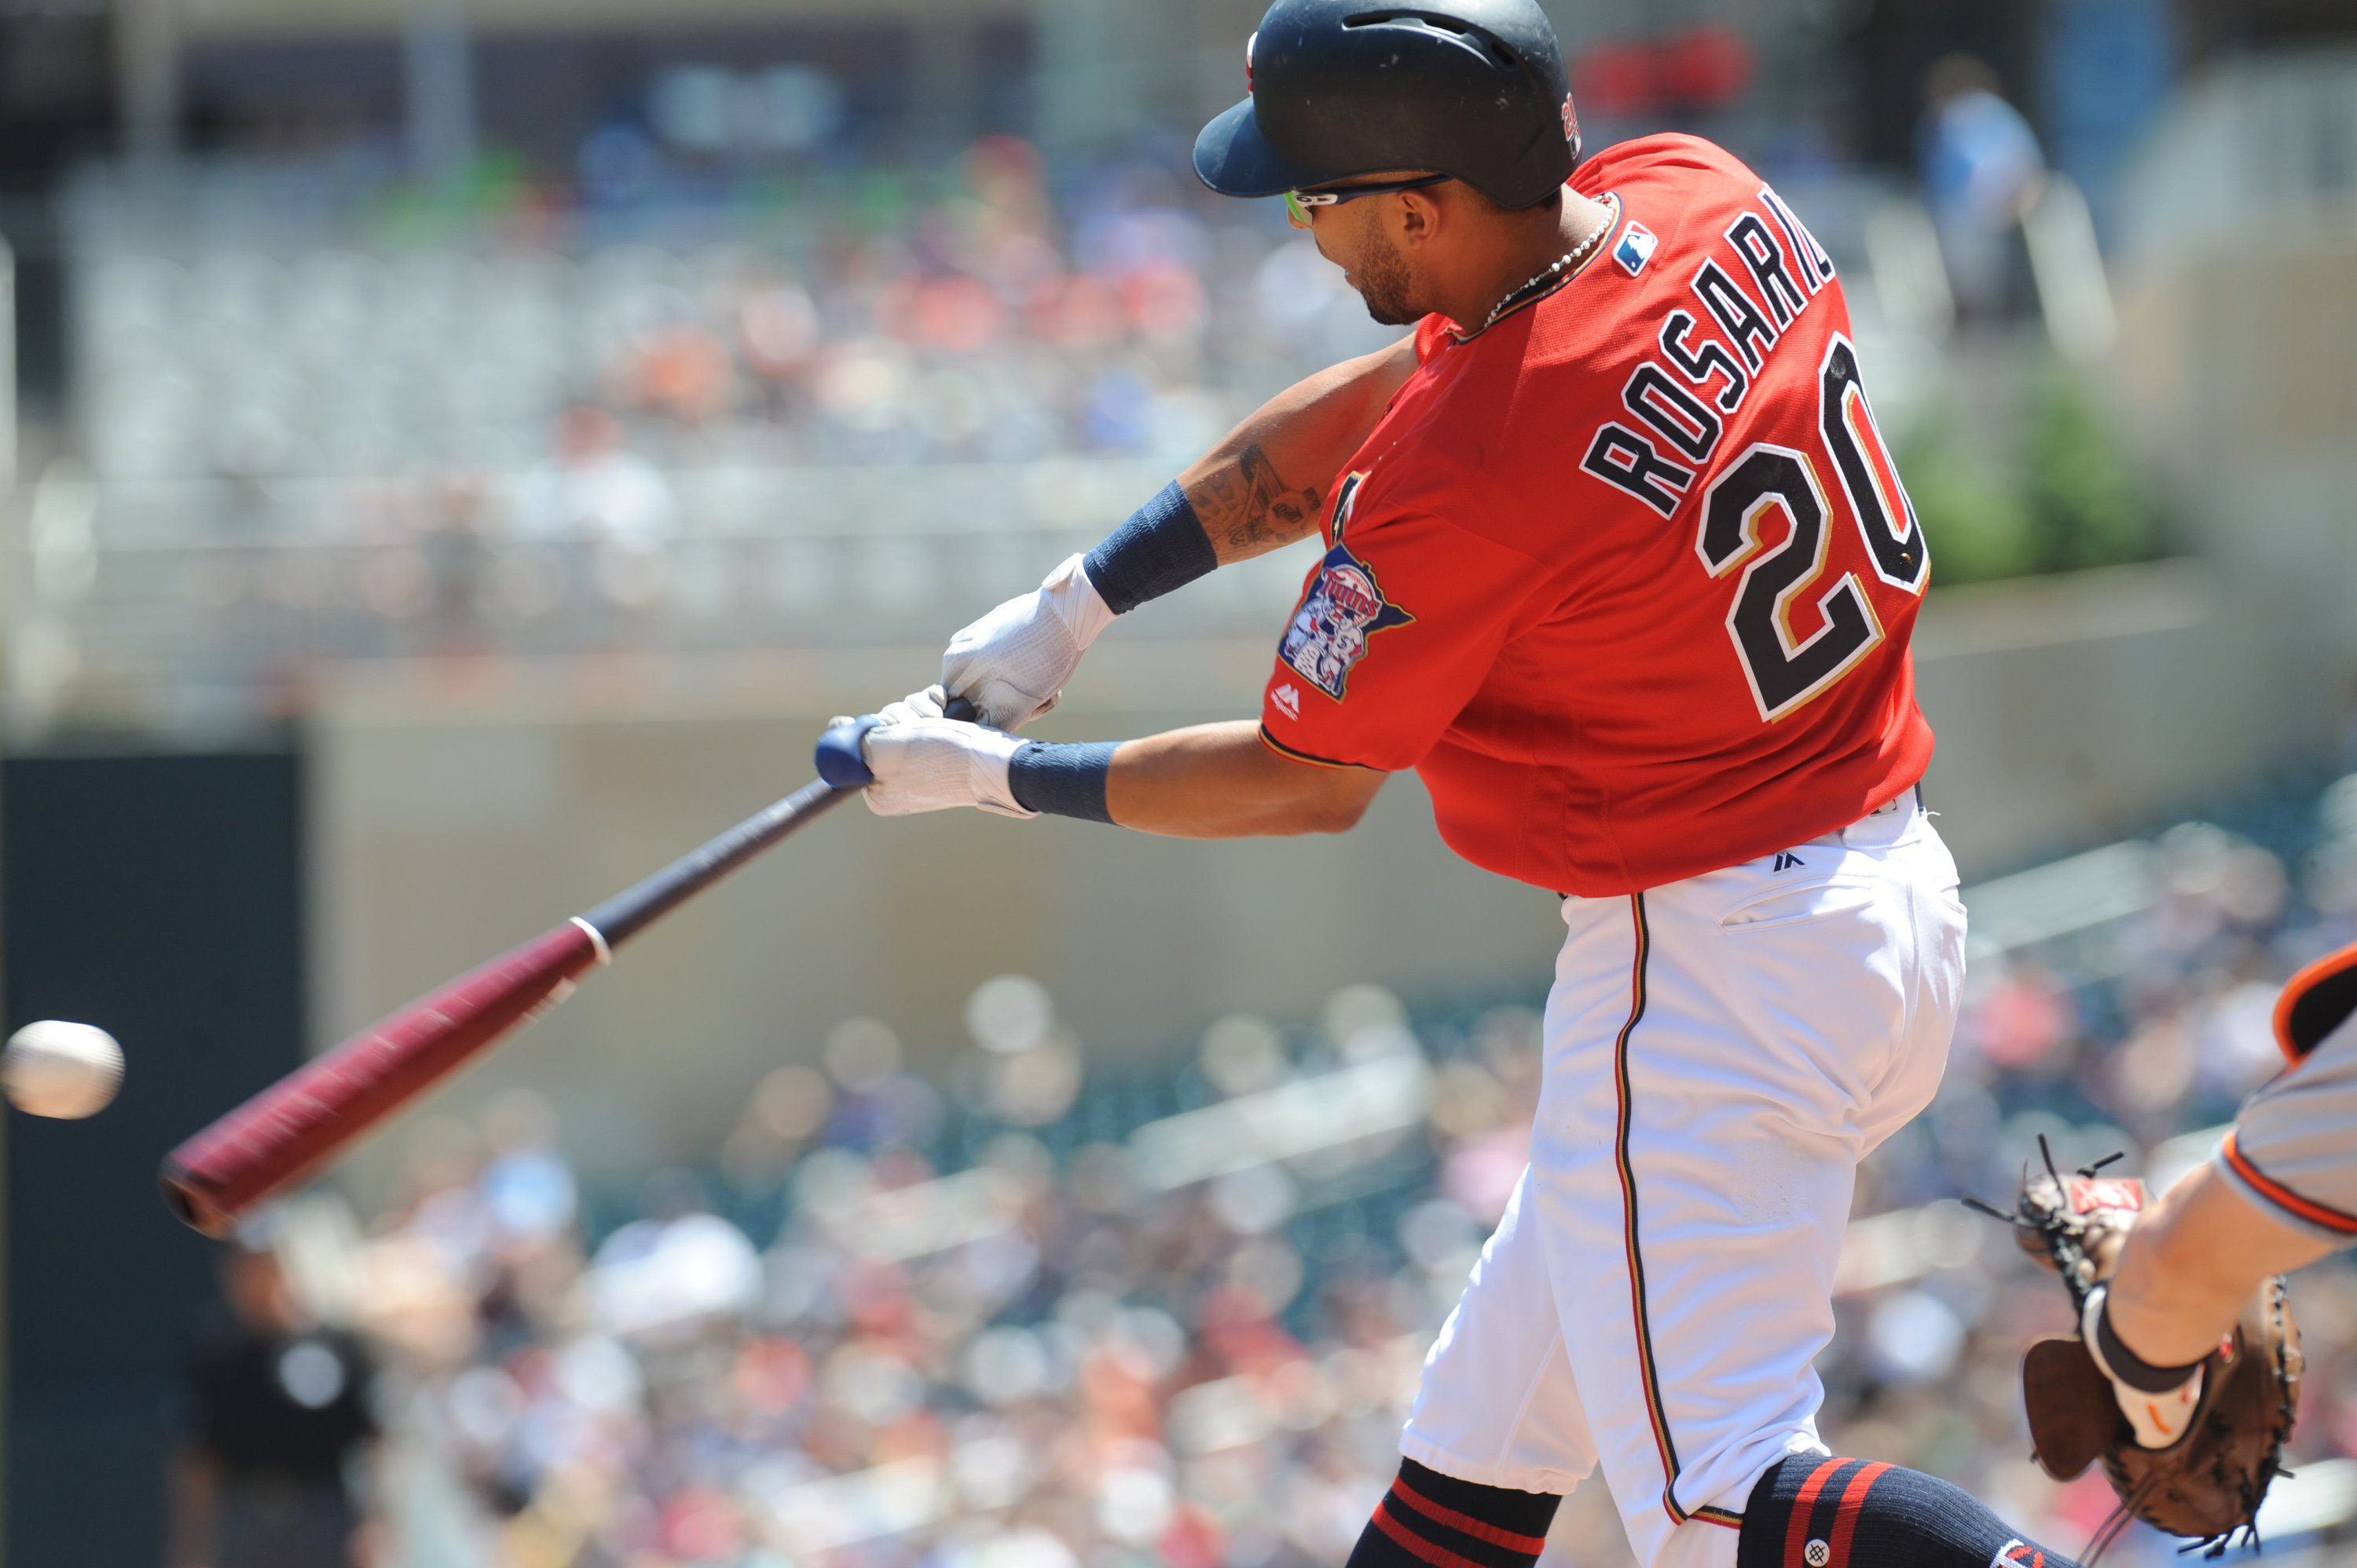 Jul 8, 2018; Minneapolis, MN, USA; Minnesota Twins left fielder Eddie Rosario (20) at bat during the first inning against the Baltimore Orioles at Target Field. Mandatory Credit: Marilyn Indahl-USA TODAY Sports